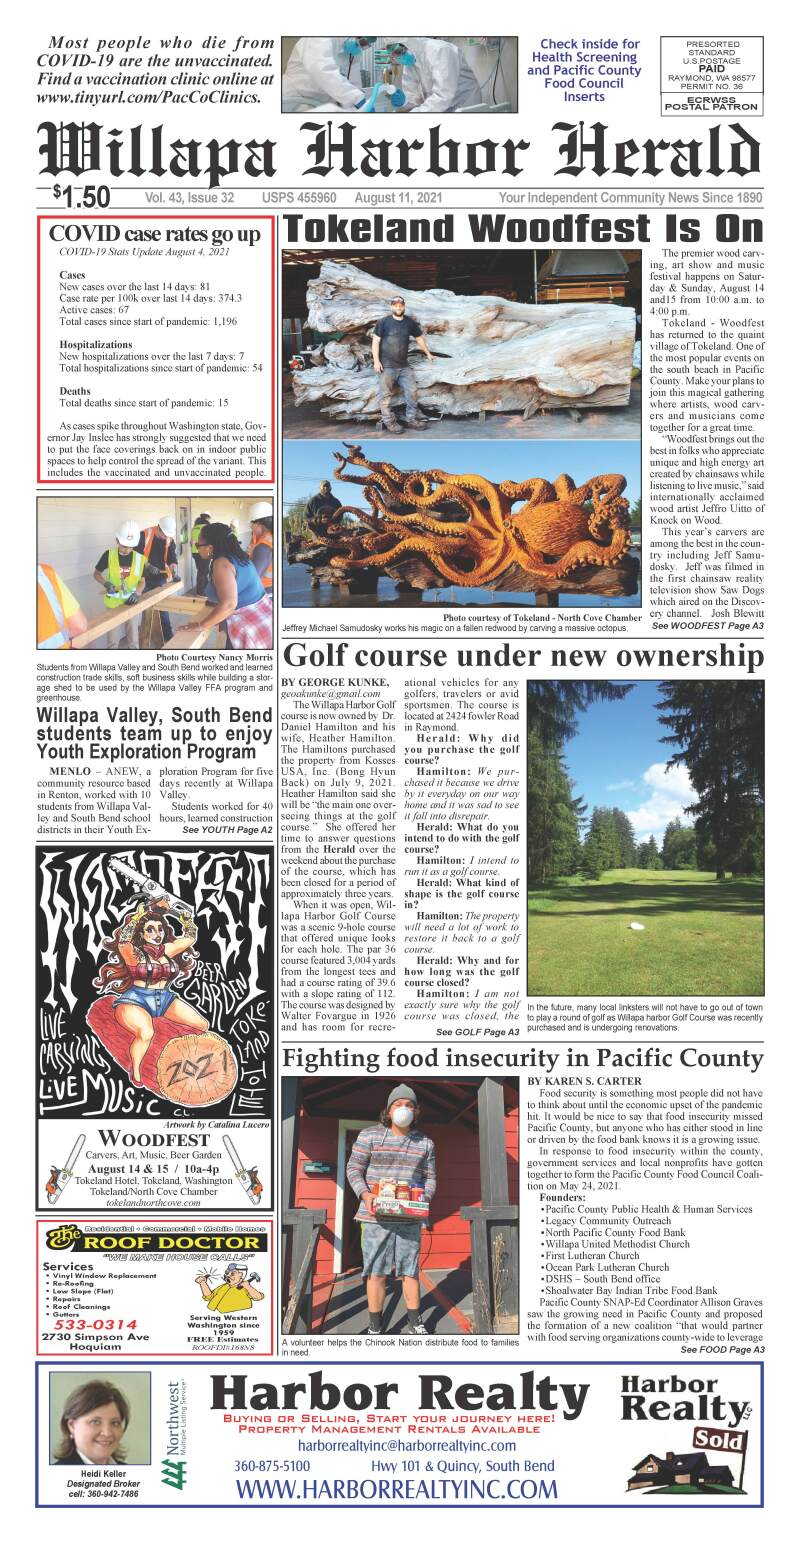 August 11, 2021 Willapa Harbor Herald and Pacific County Press